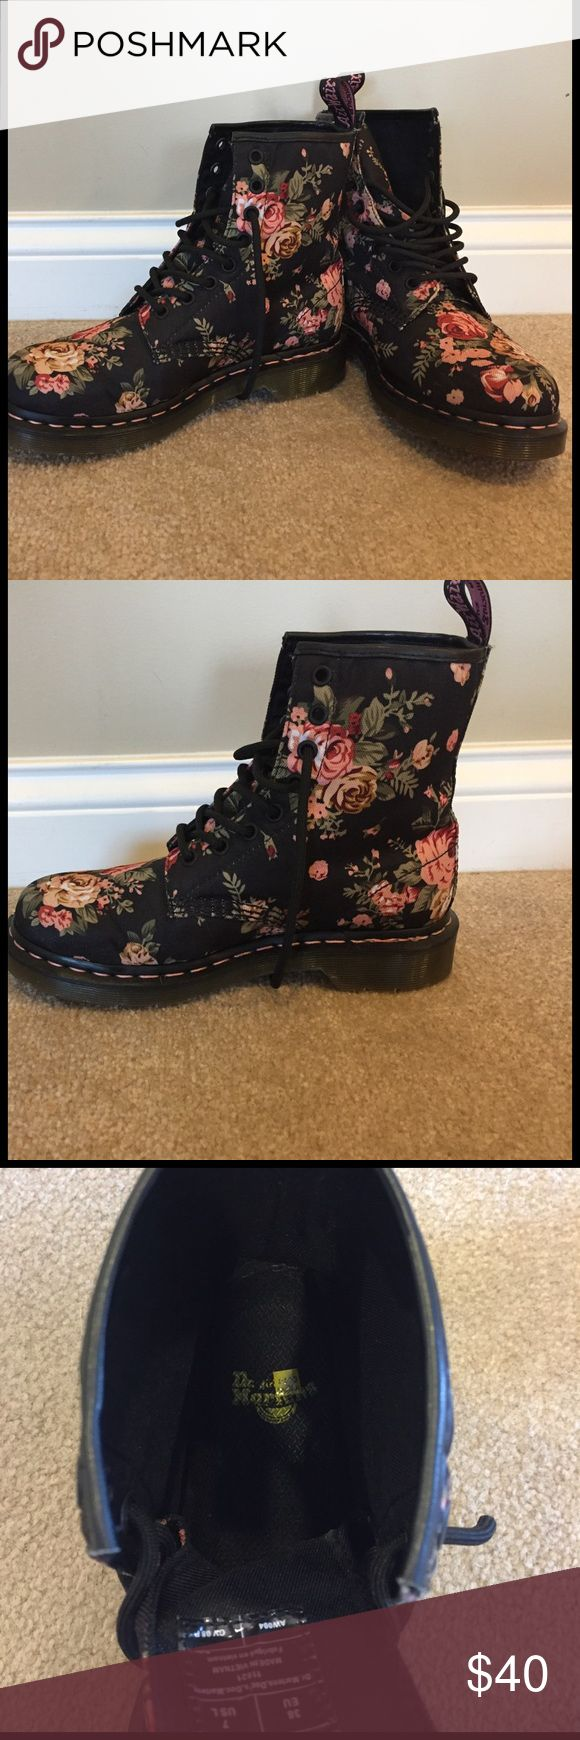 Doc Marten Black Victorian combat boot Size 7 floral combat boots in like new condition. Dr. Martens Shoes Combat & Moto Boots